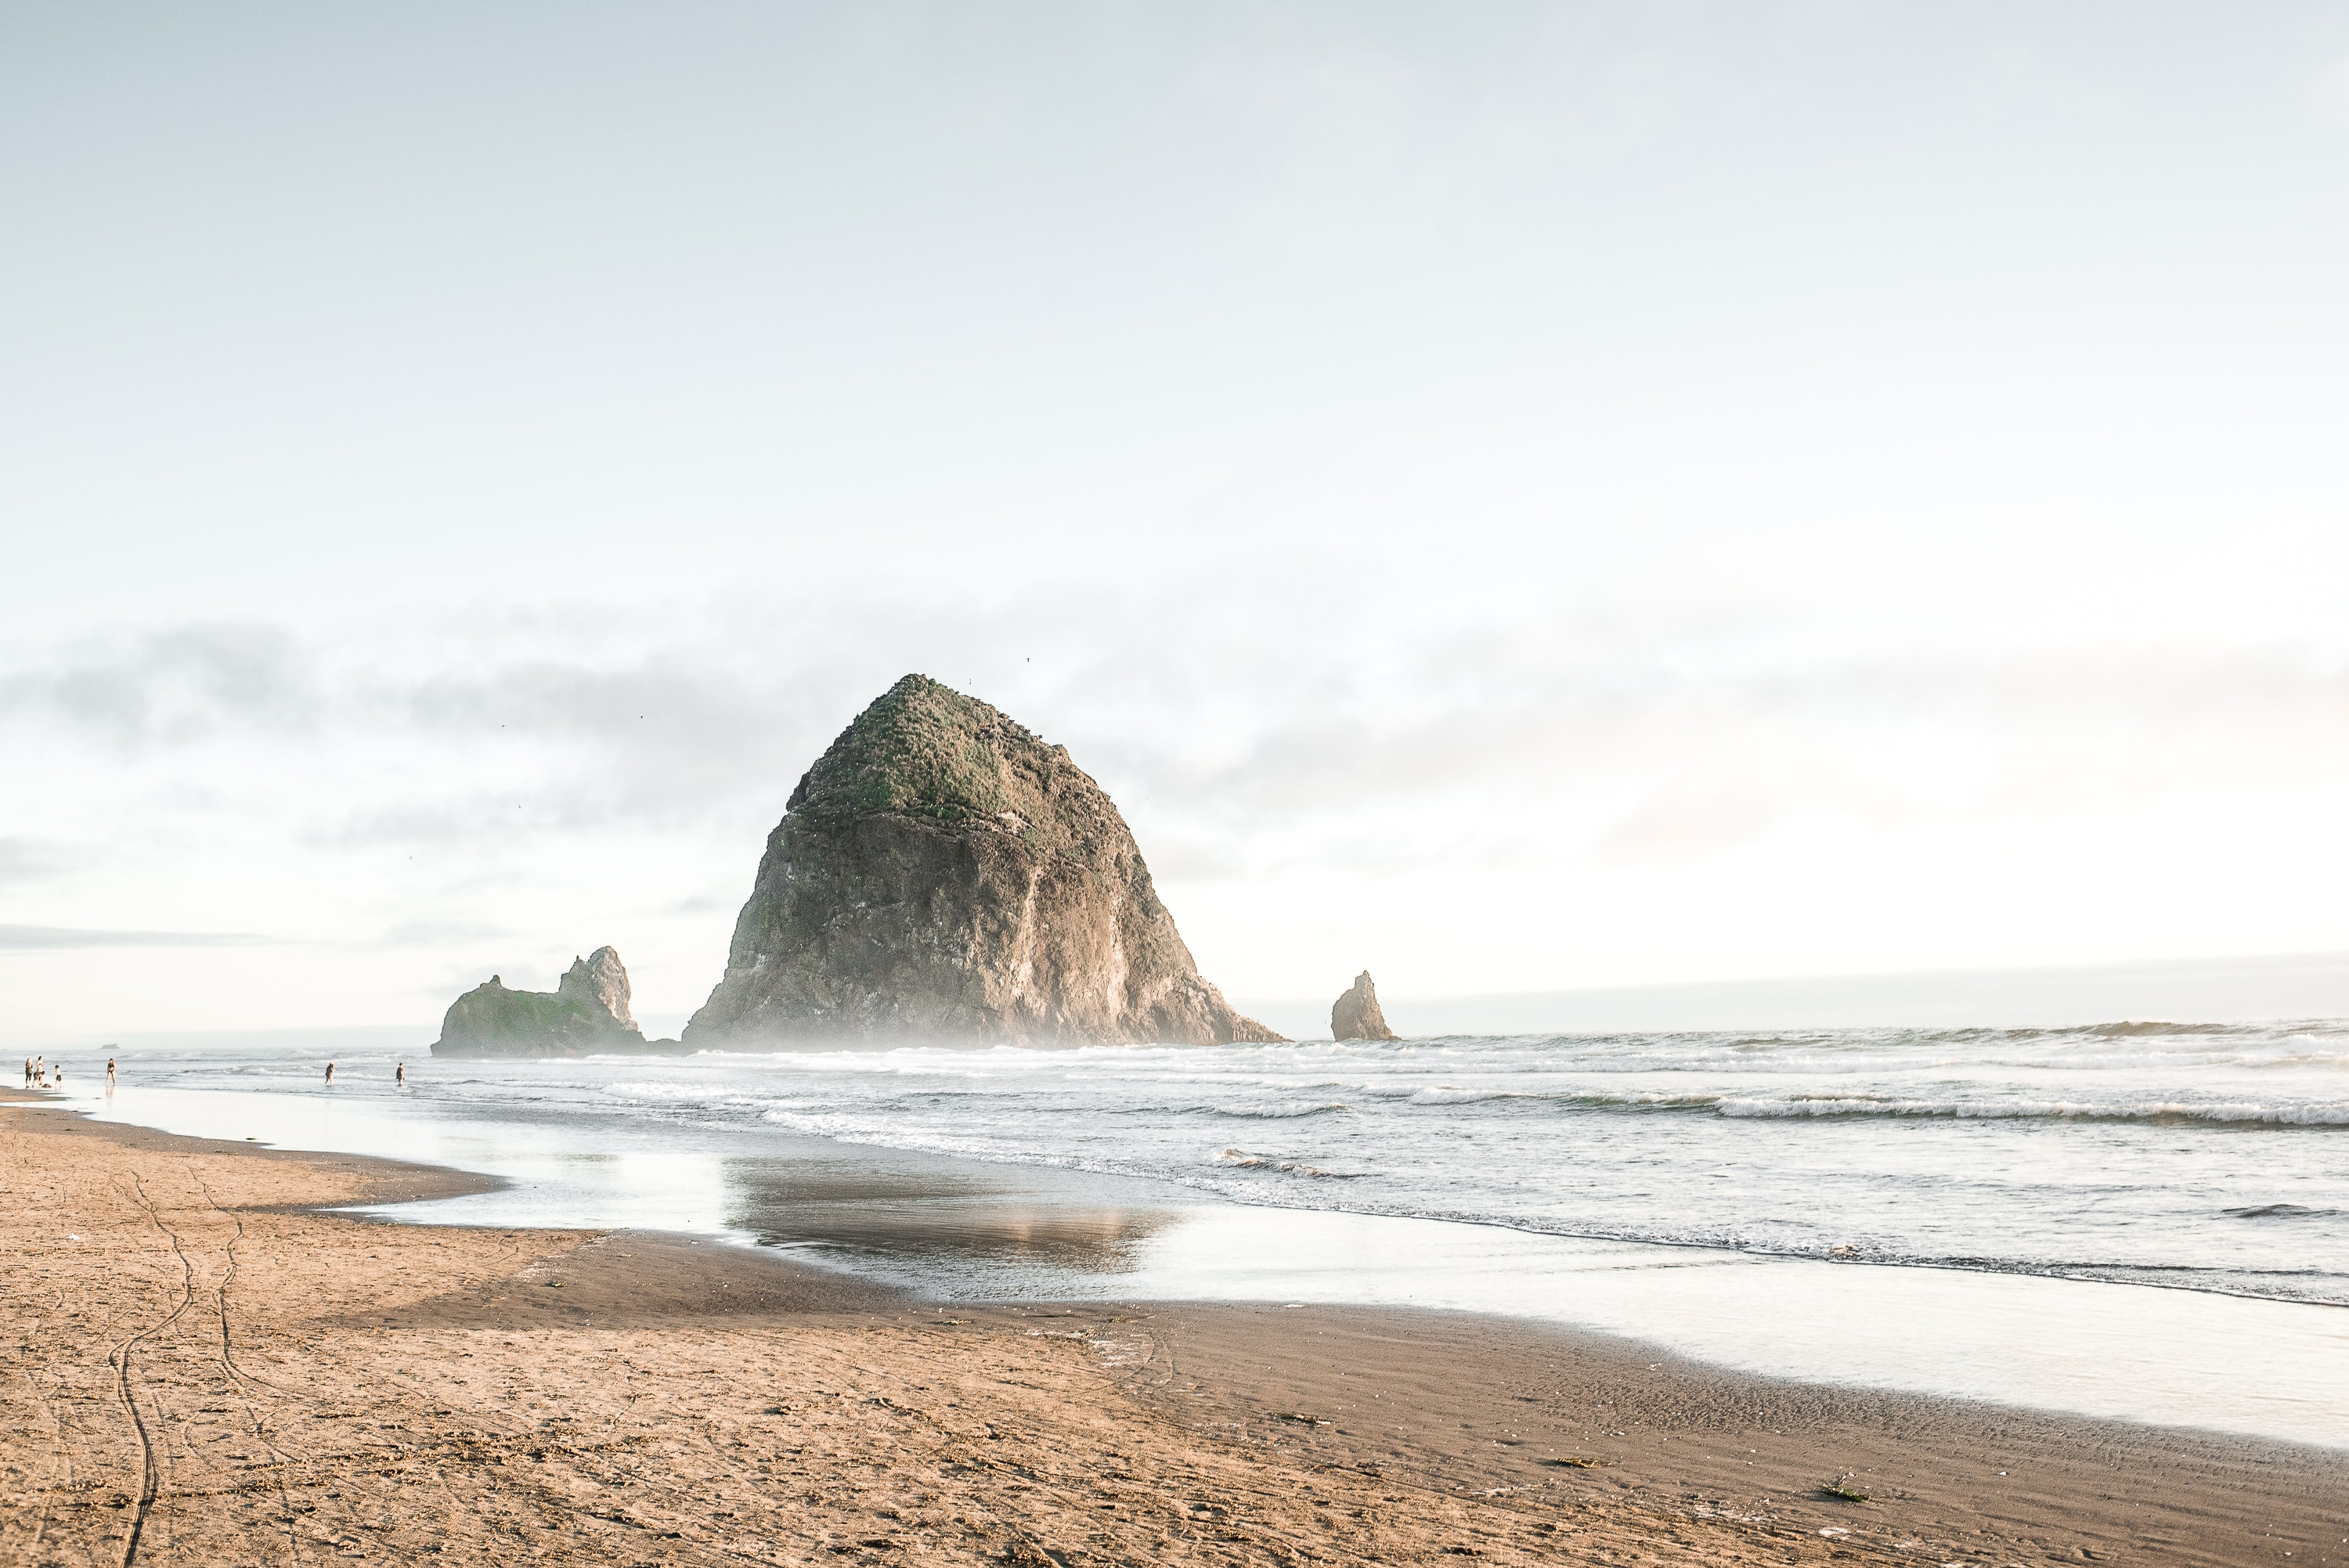 View from the sand beach on the large mountain rock in the ocean at Cannon Beach, Oregon.